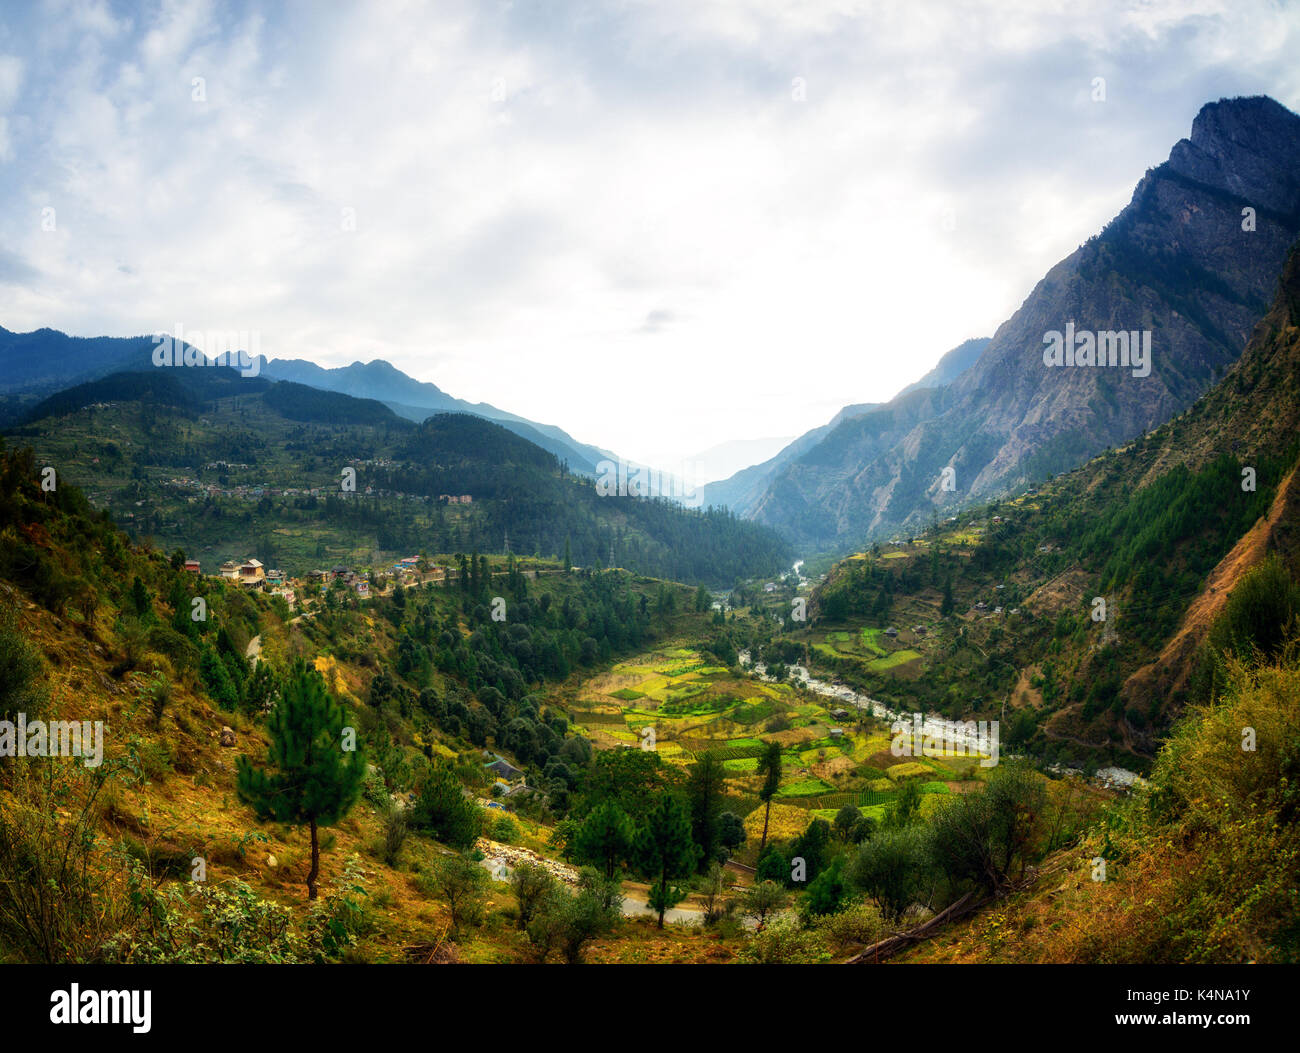 Himalayan village view from road in Parvati Valley, Himachal Pradesh - Stock Image